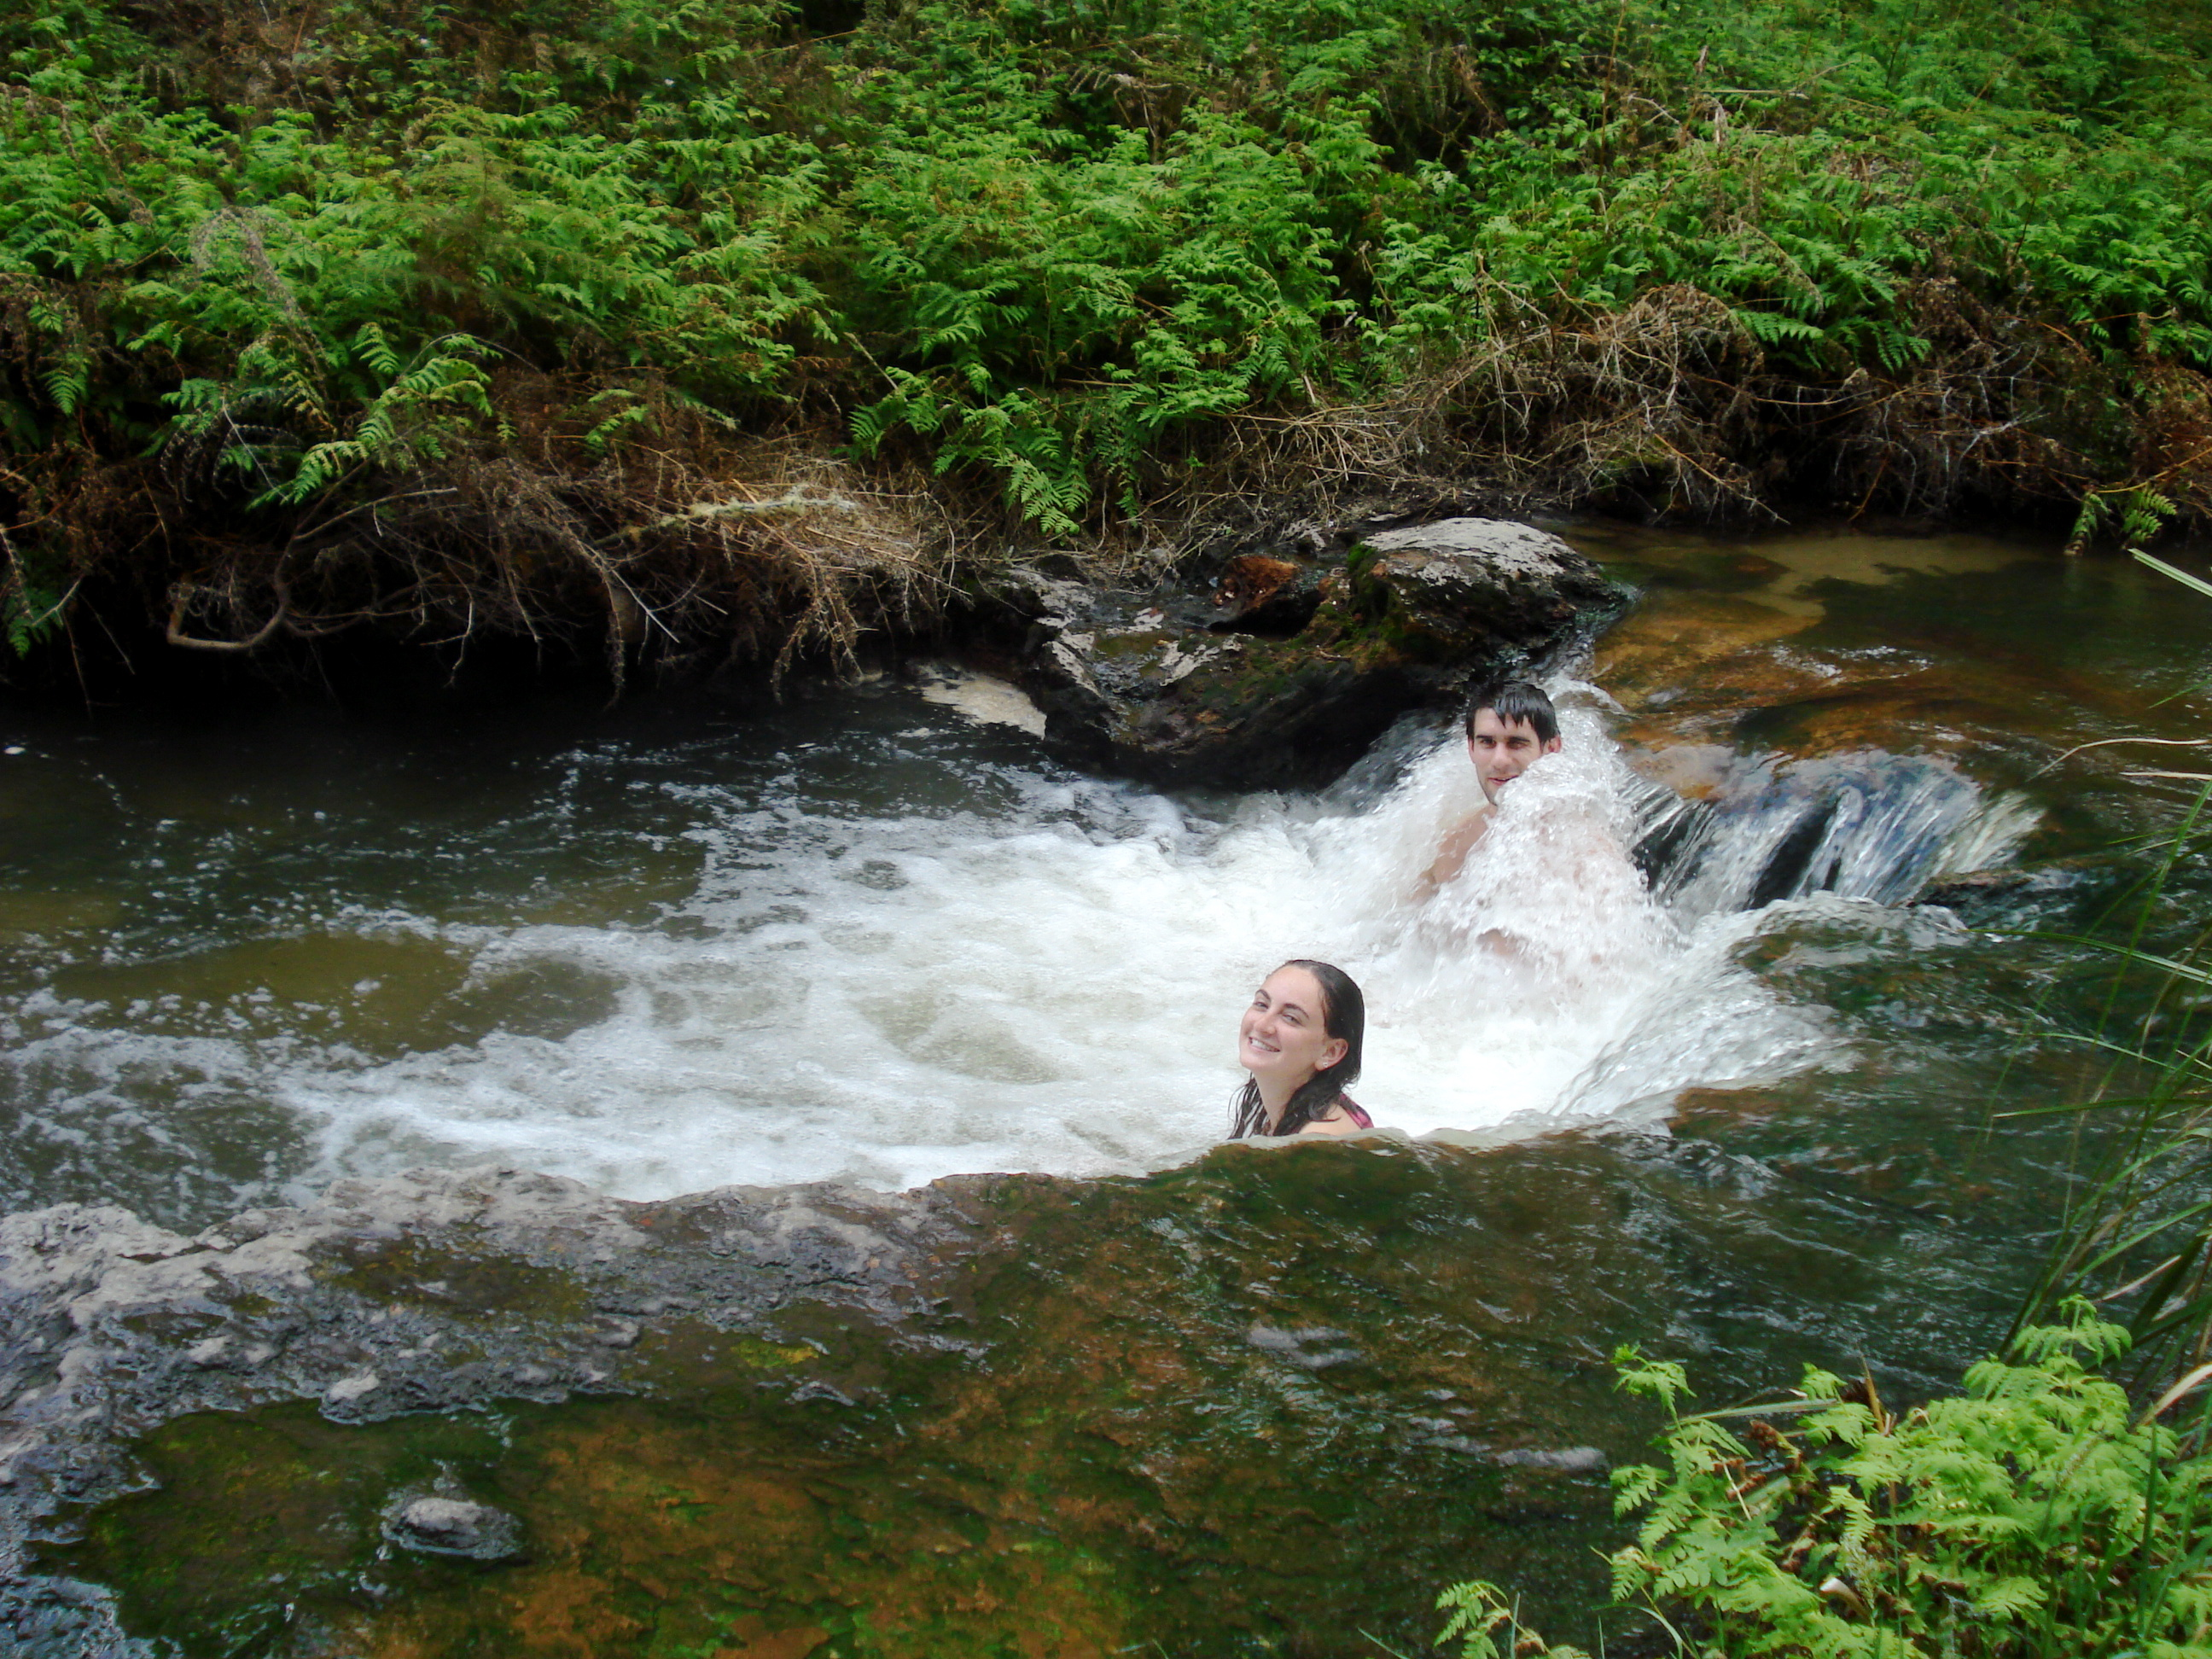 Swimming in a geothermal river in New Zealand